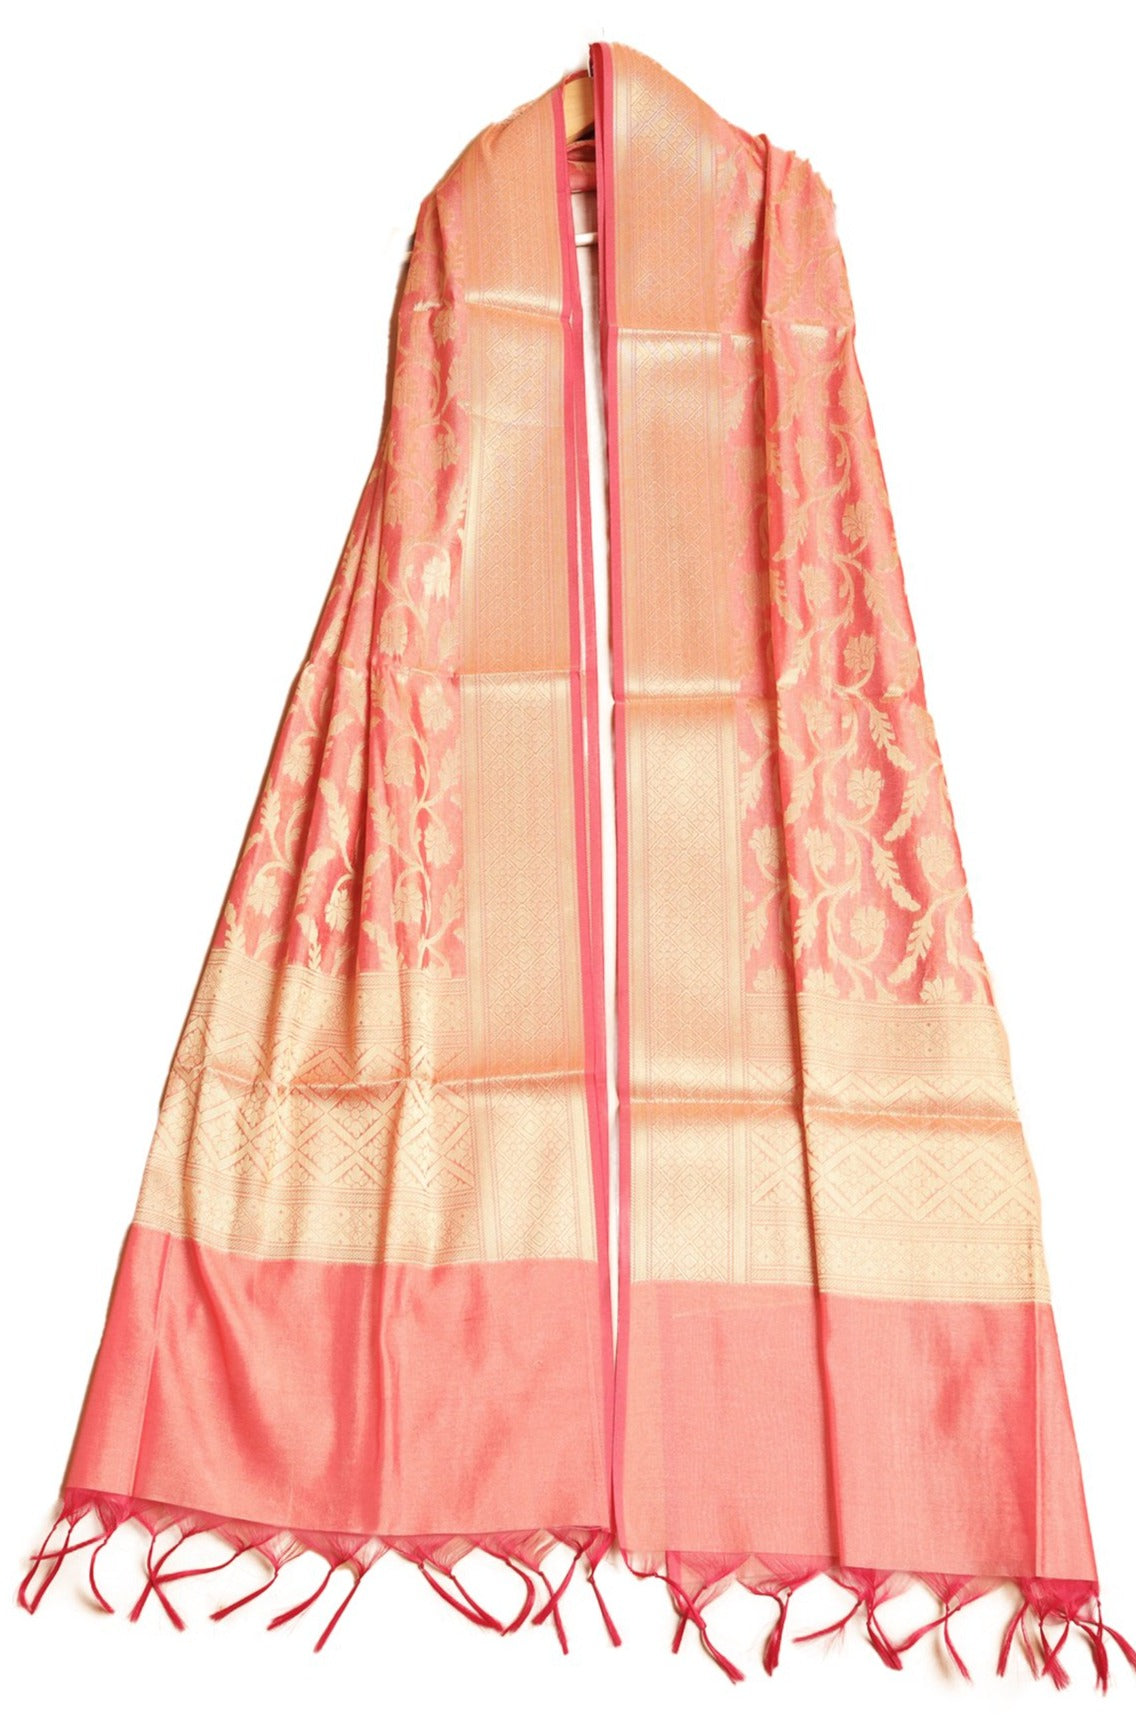 Damask Pattern Banarasi Silk Dupatta - The Pashm